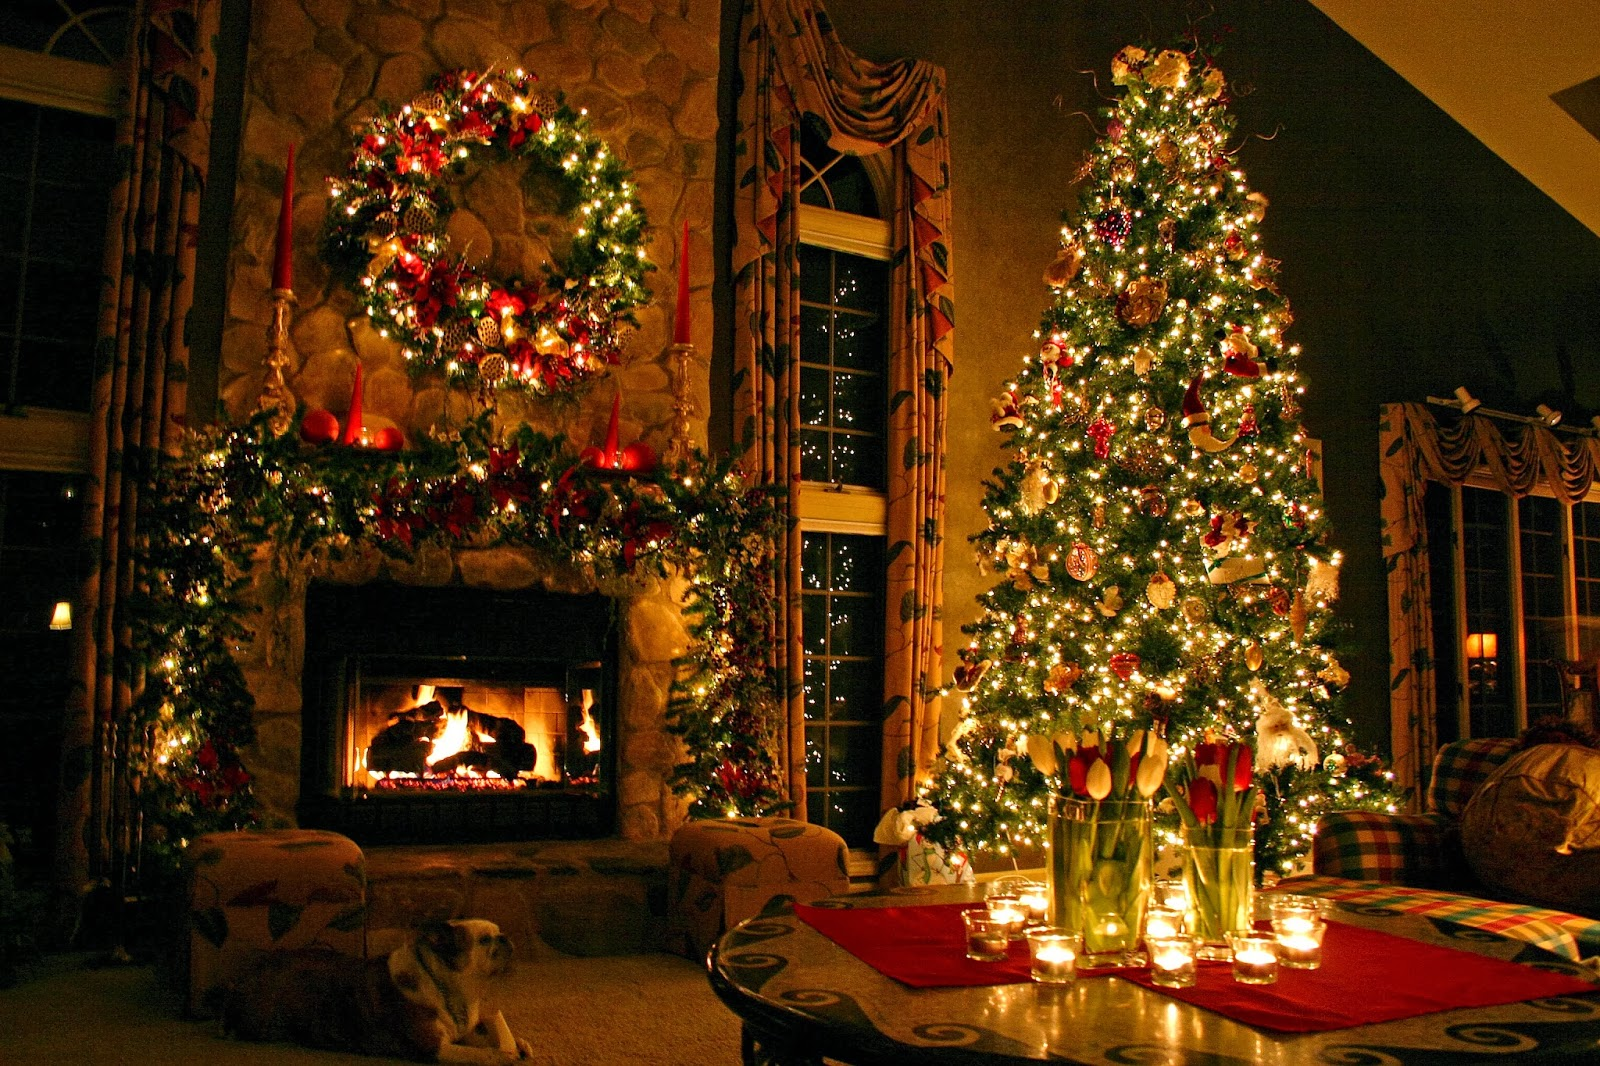 Simply elegant easy christmas decorating ideas lifestuffs for Ideas for decorating my home for christmas